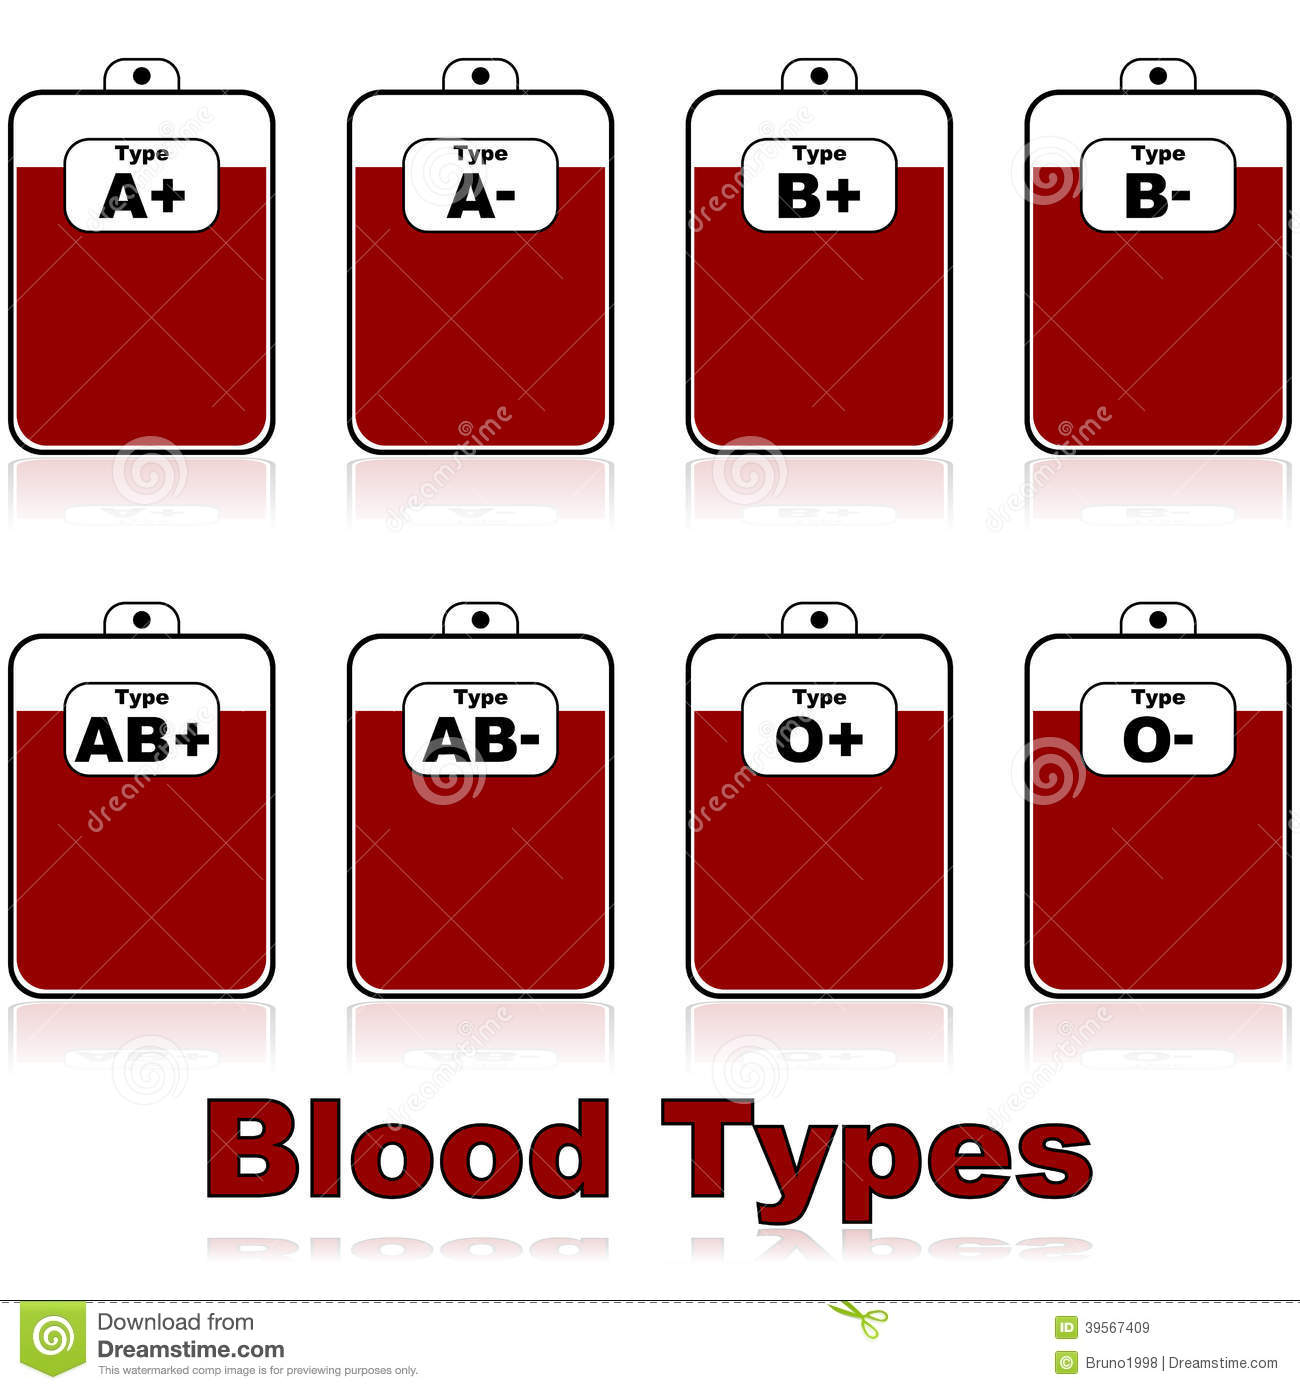 https://thumbs.dreamstime.com/z/blood-types-icon-illustration-different-inside-bags-39567409.jpg